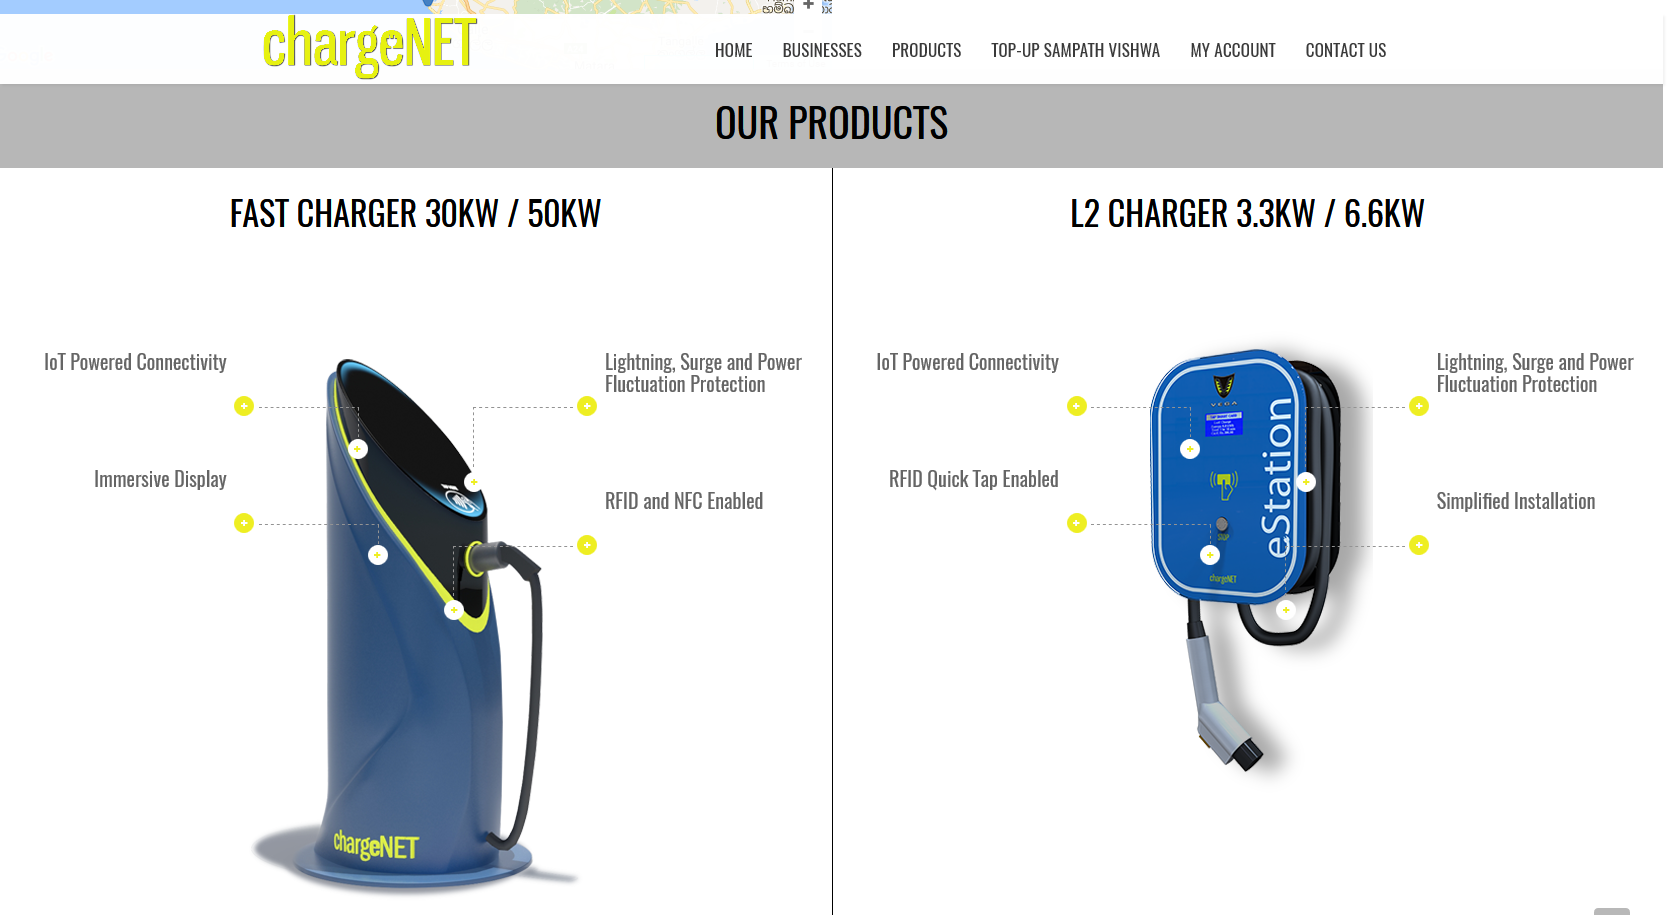 chargeNET - Products